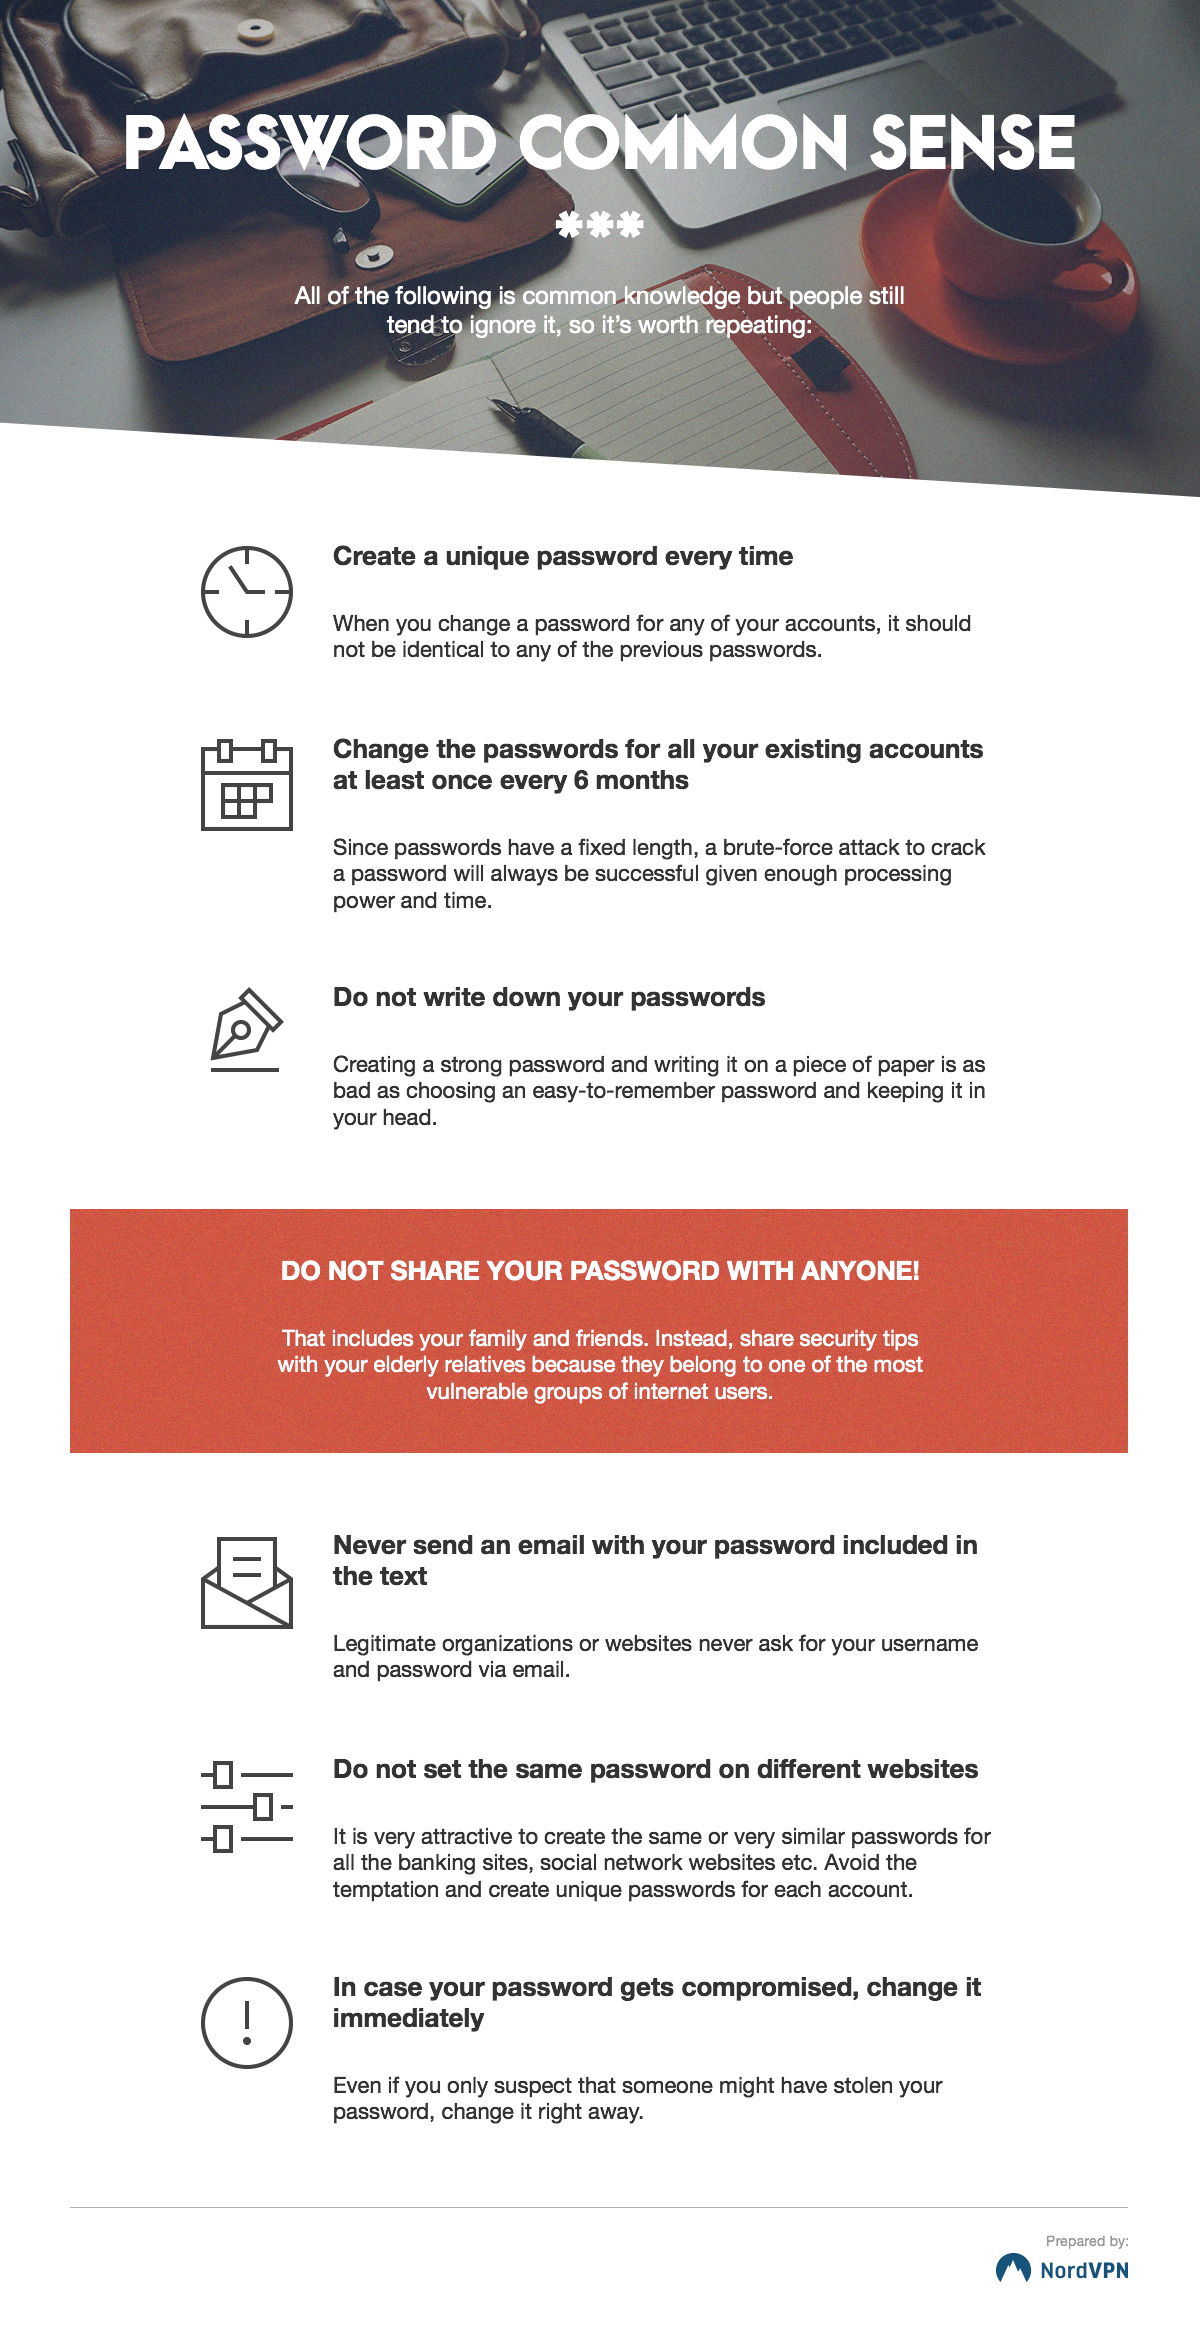 Password Common Sense - Infographic